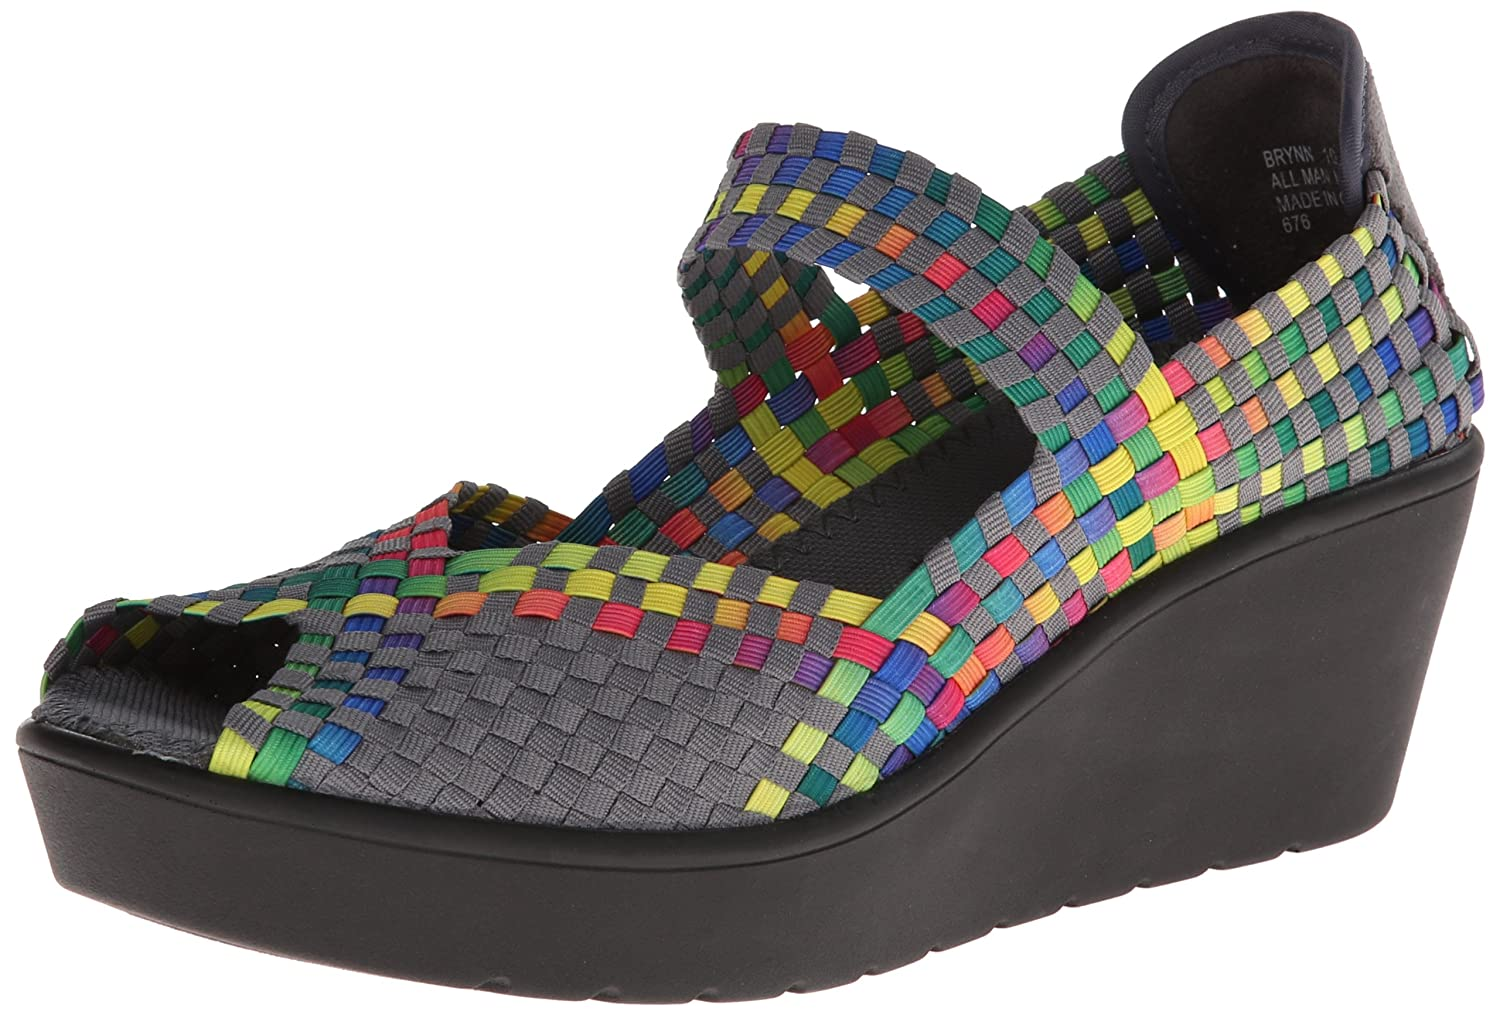 STEVEN by Steve Madden Women's Brynn Wedge Sandal B00I479Q3I 8.5 B(M) US|Bright Multi